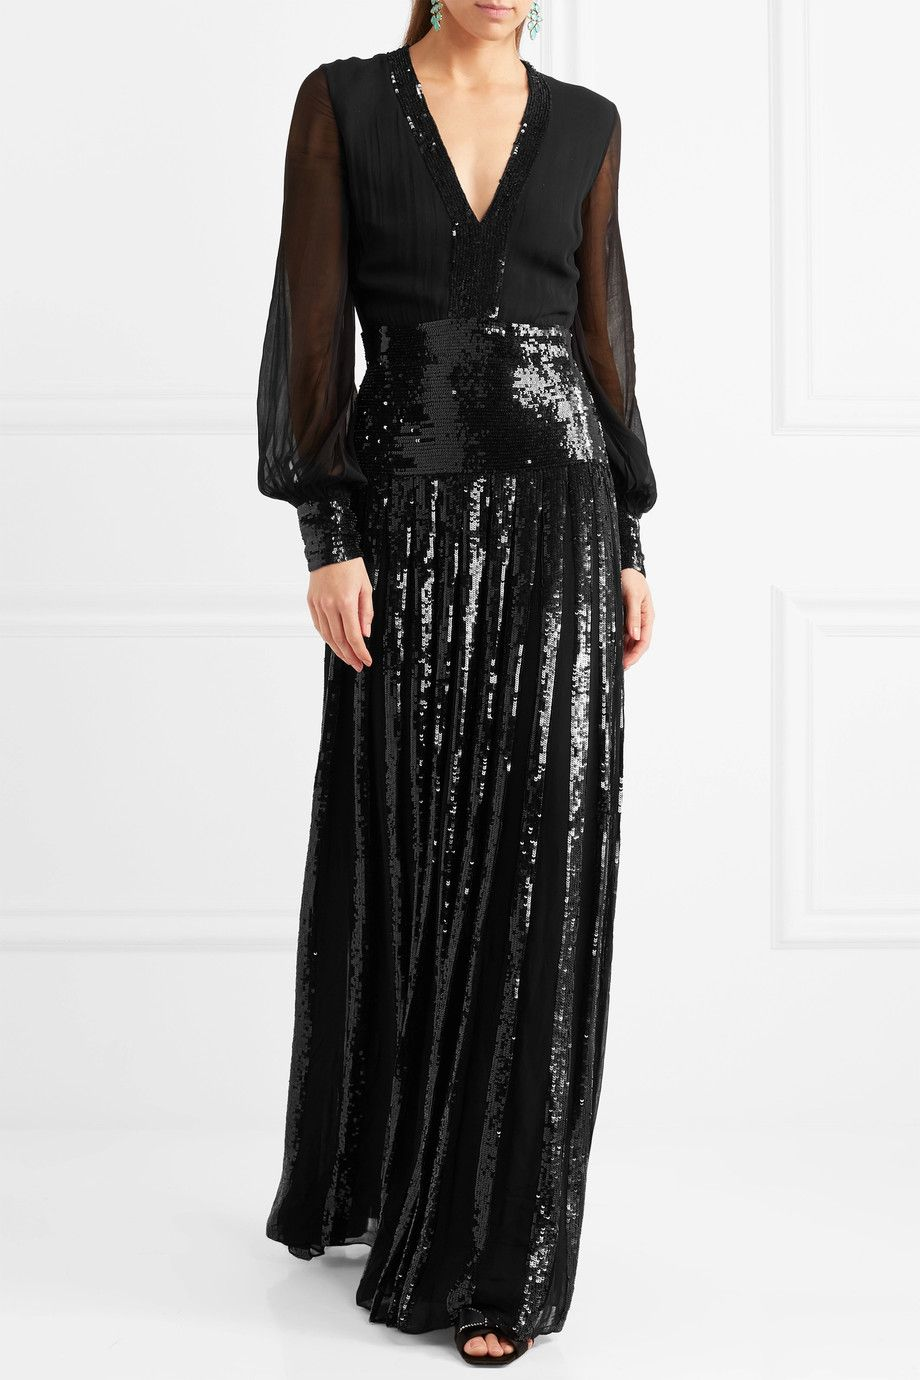 Filigree Pleated Sequined Chiffon Gown - Black Temperley London h1kVR